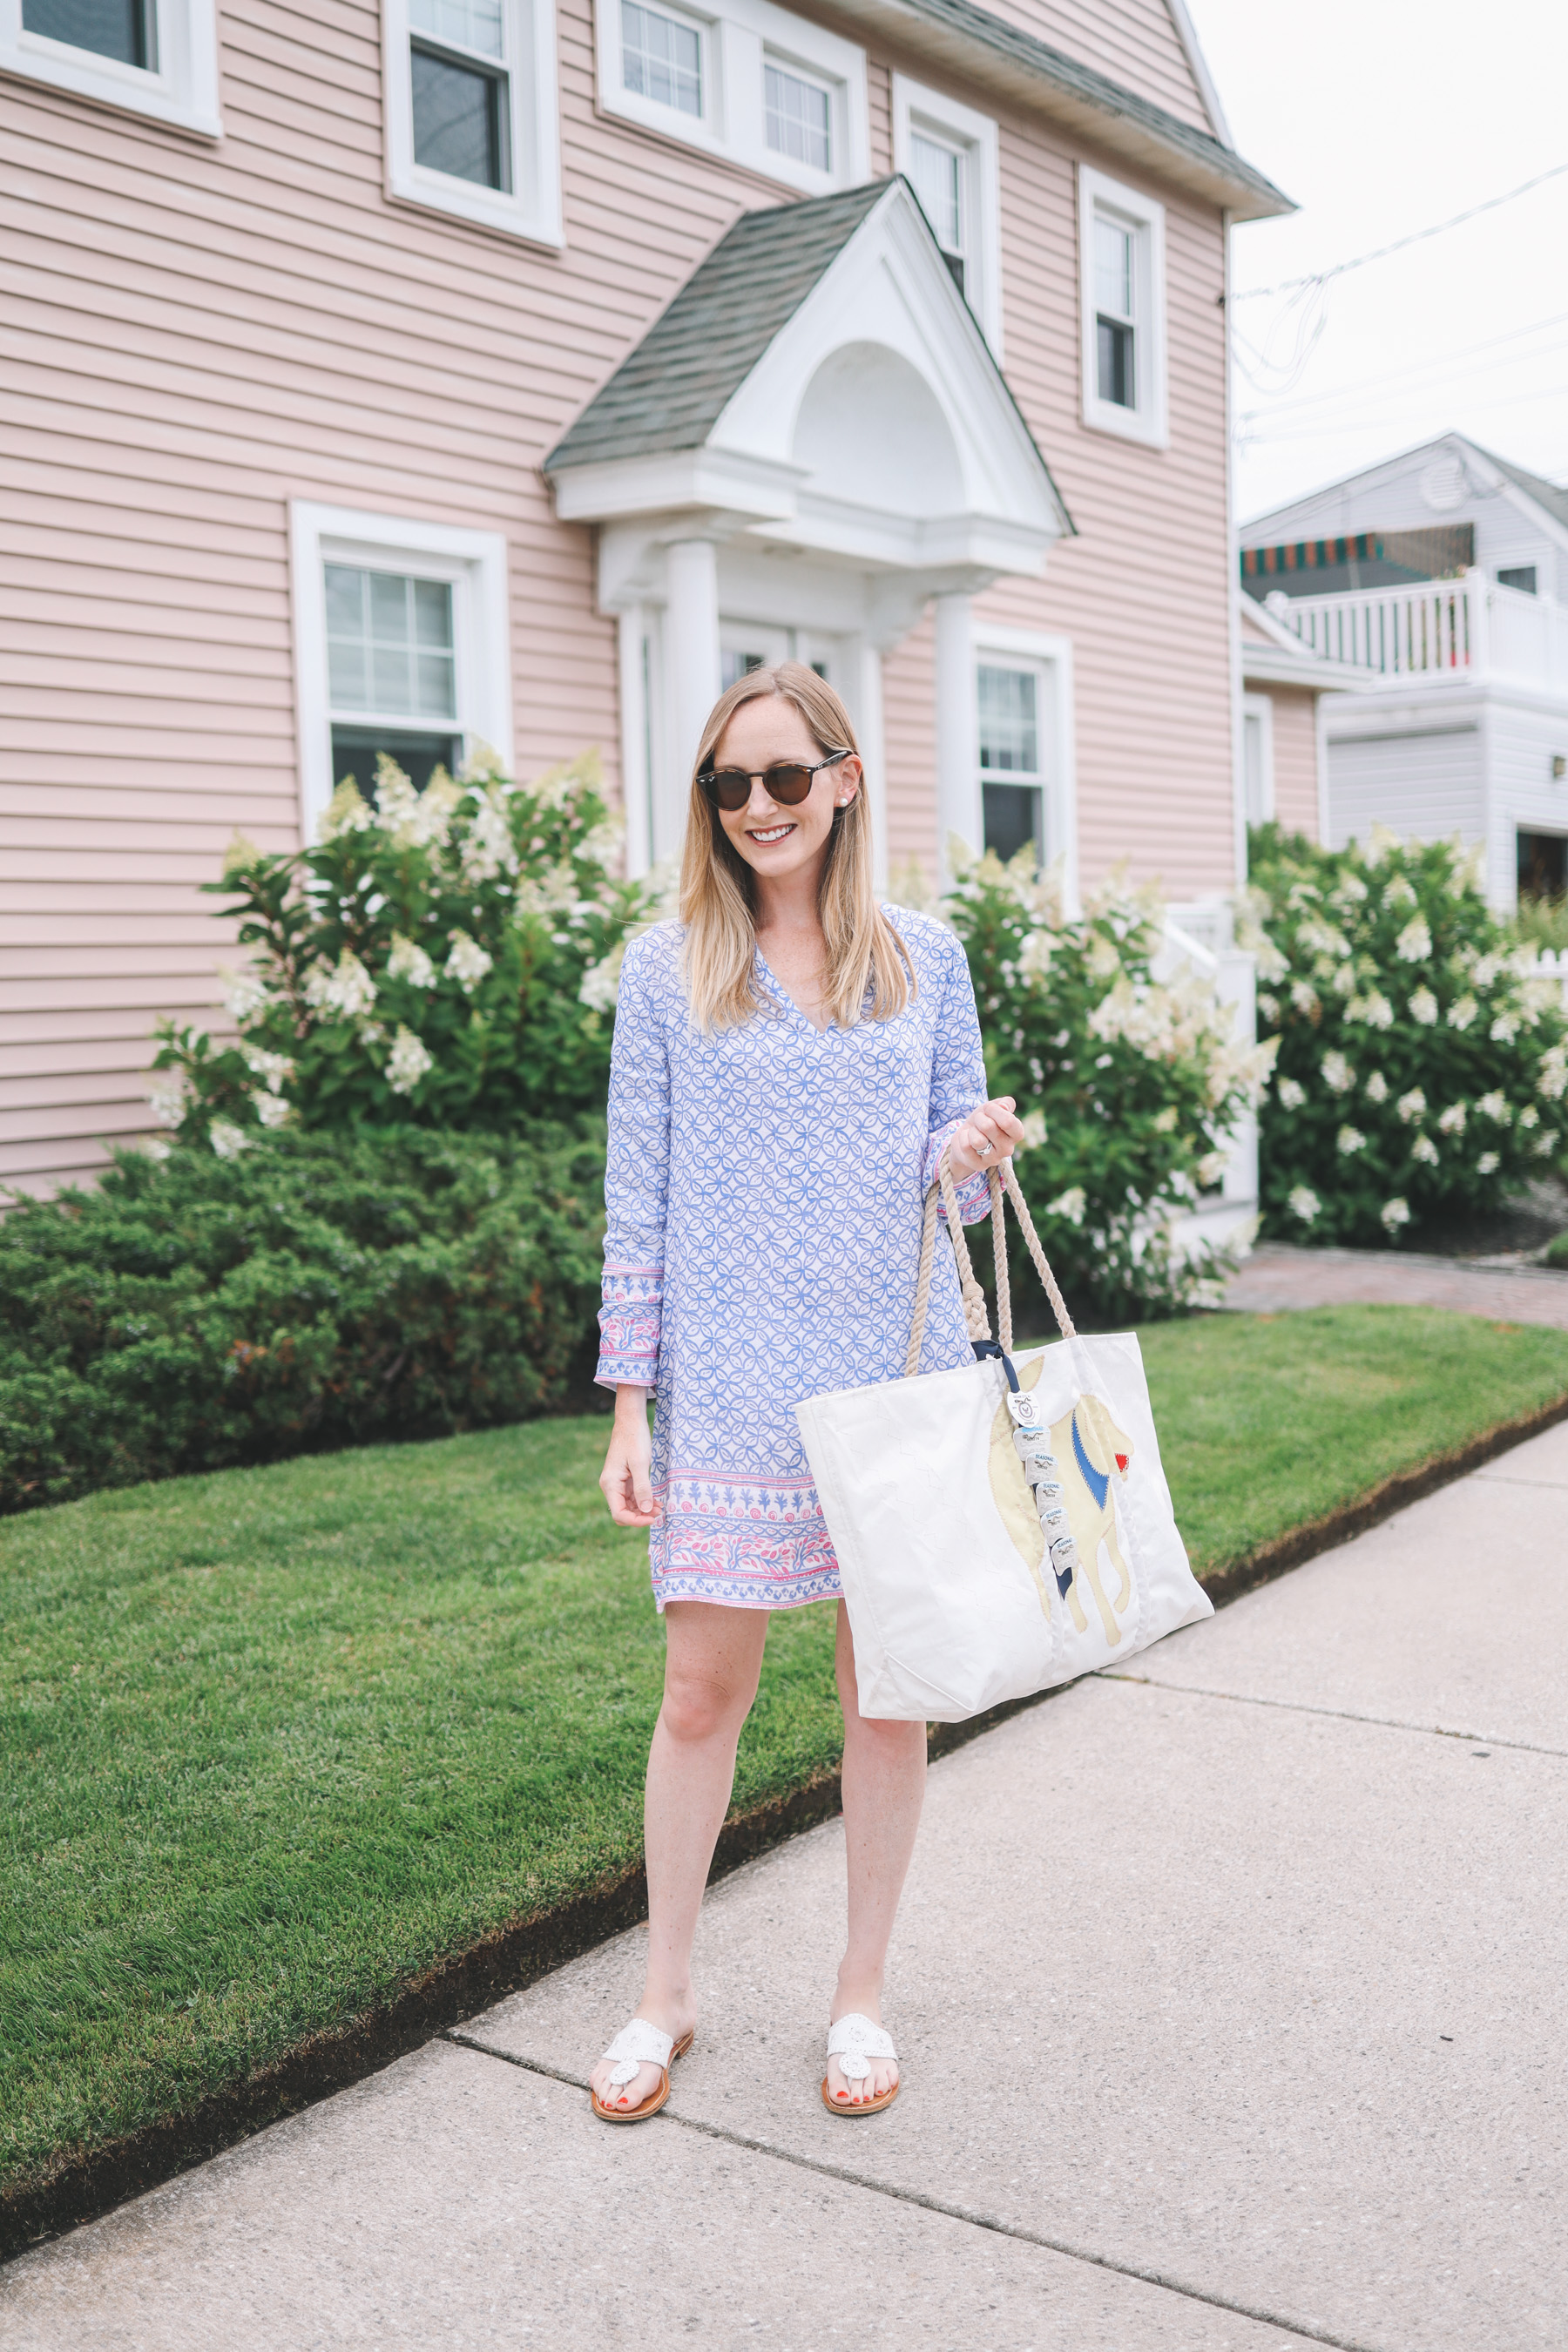 Kelly holds a beach tote in front of a salmon-colored house in Jersey